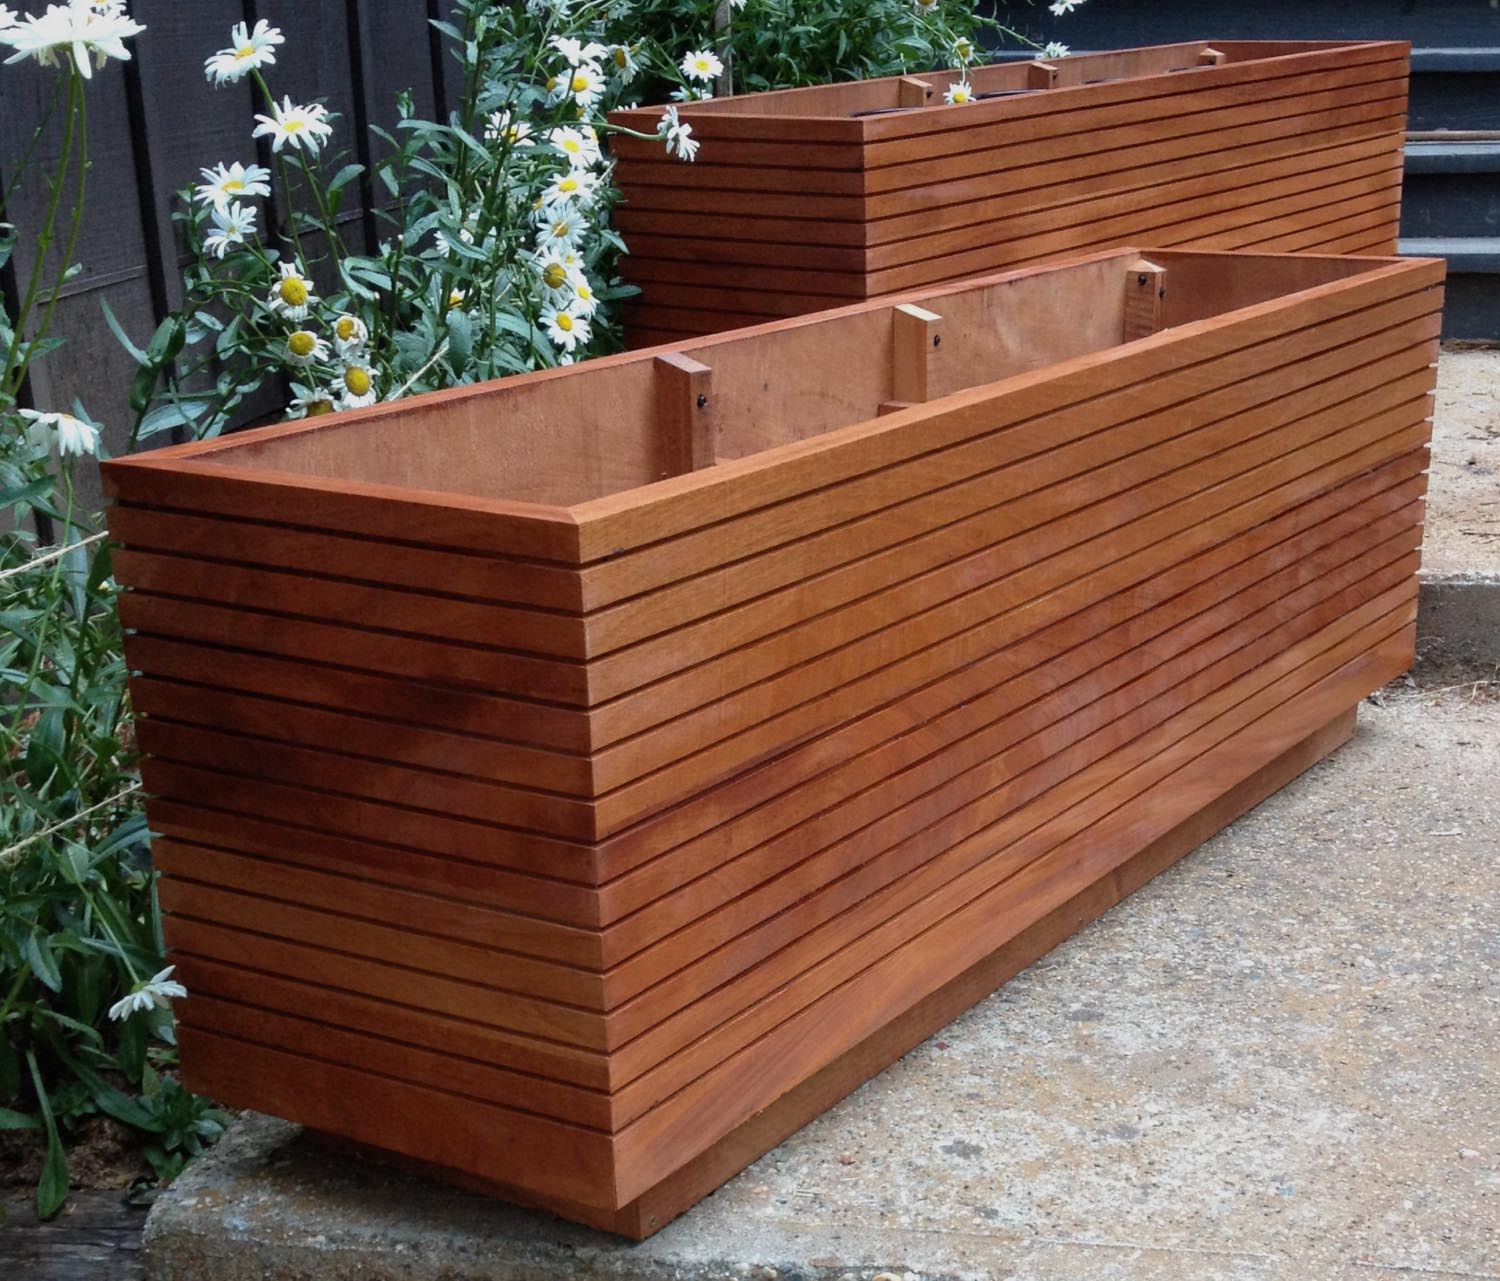 Rectangular Wooden Planter Boxes